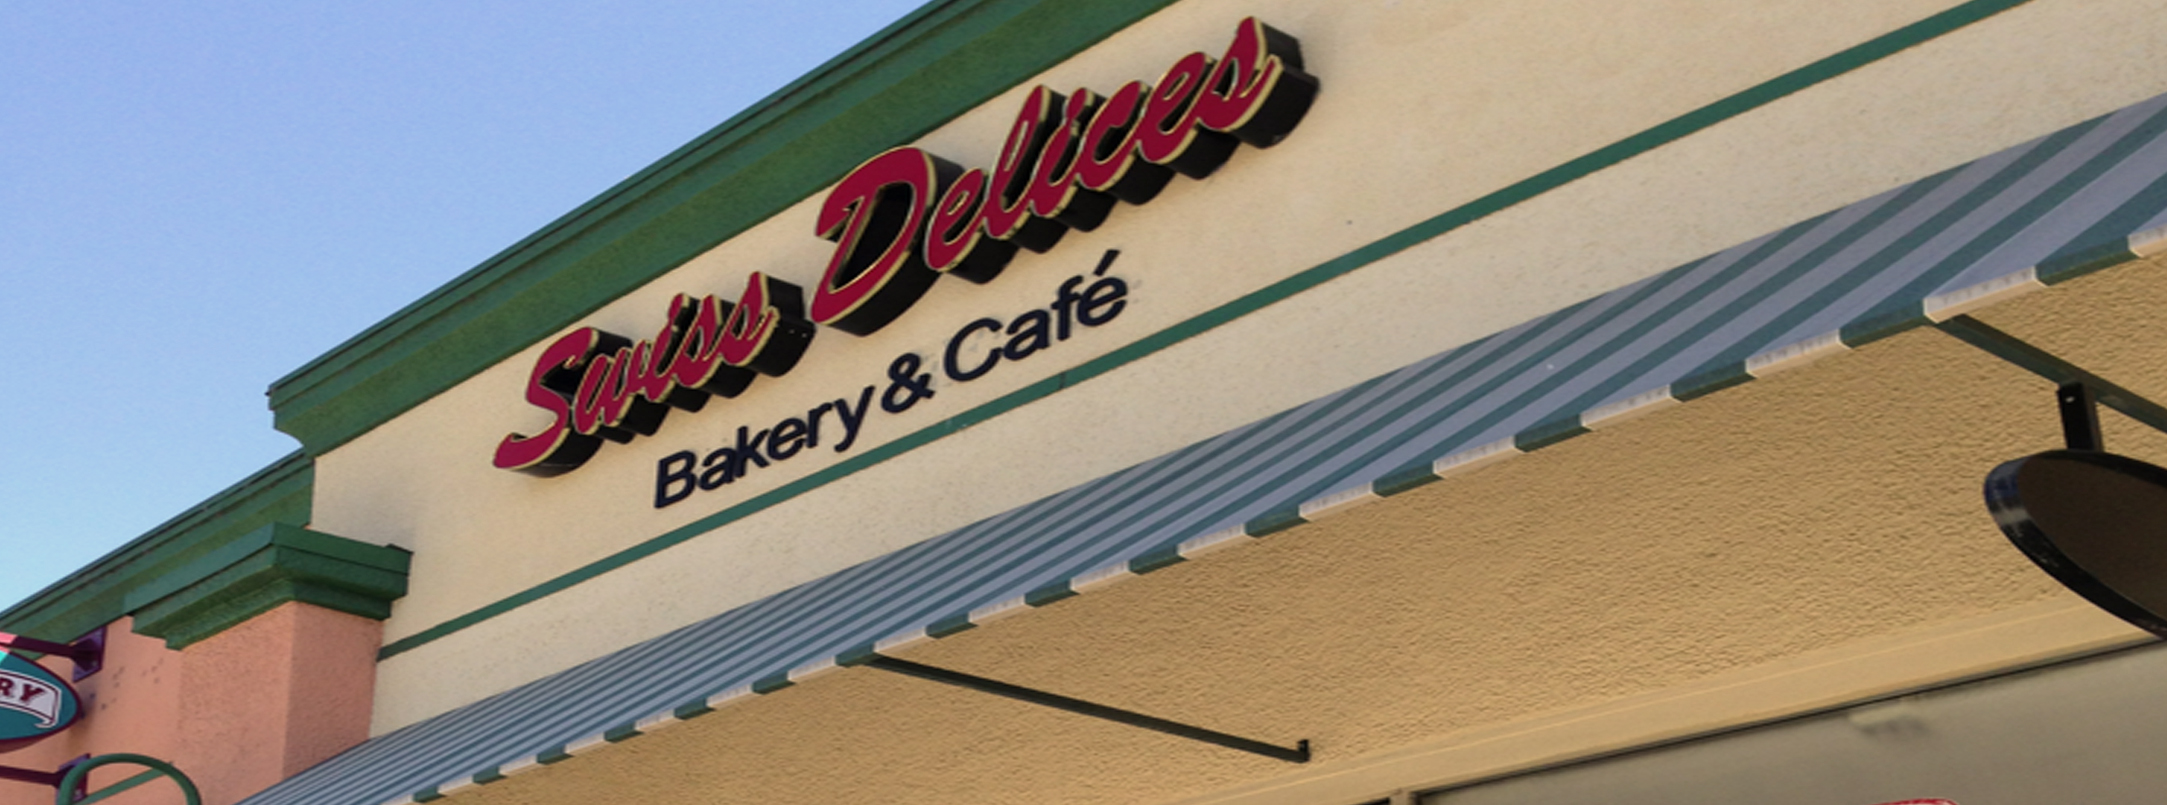 Swiss Delices Bakery, Castro Valley